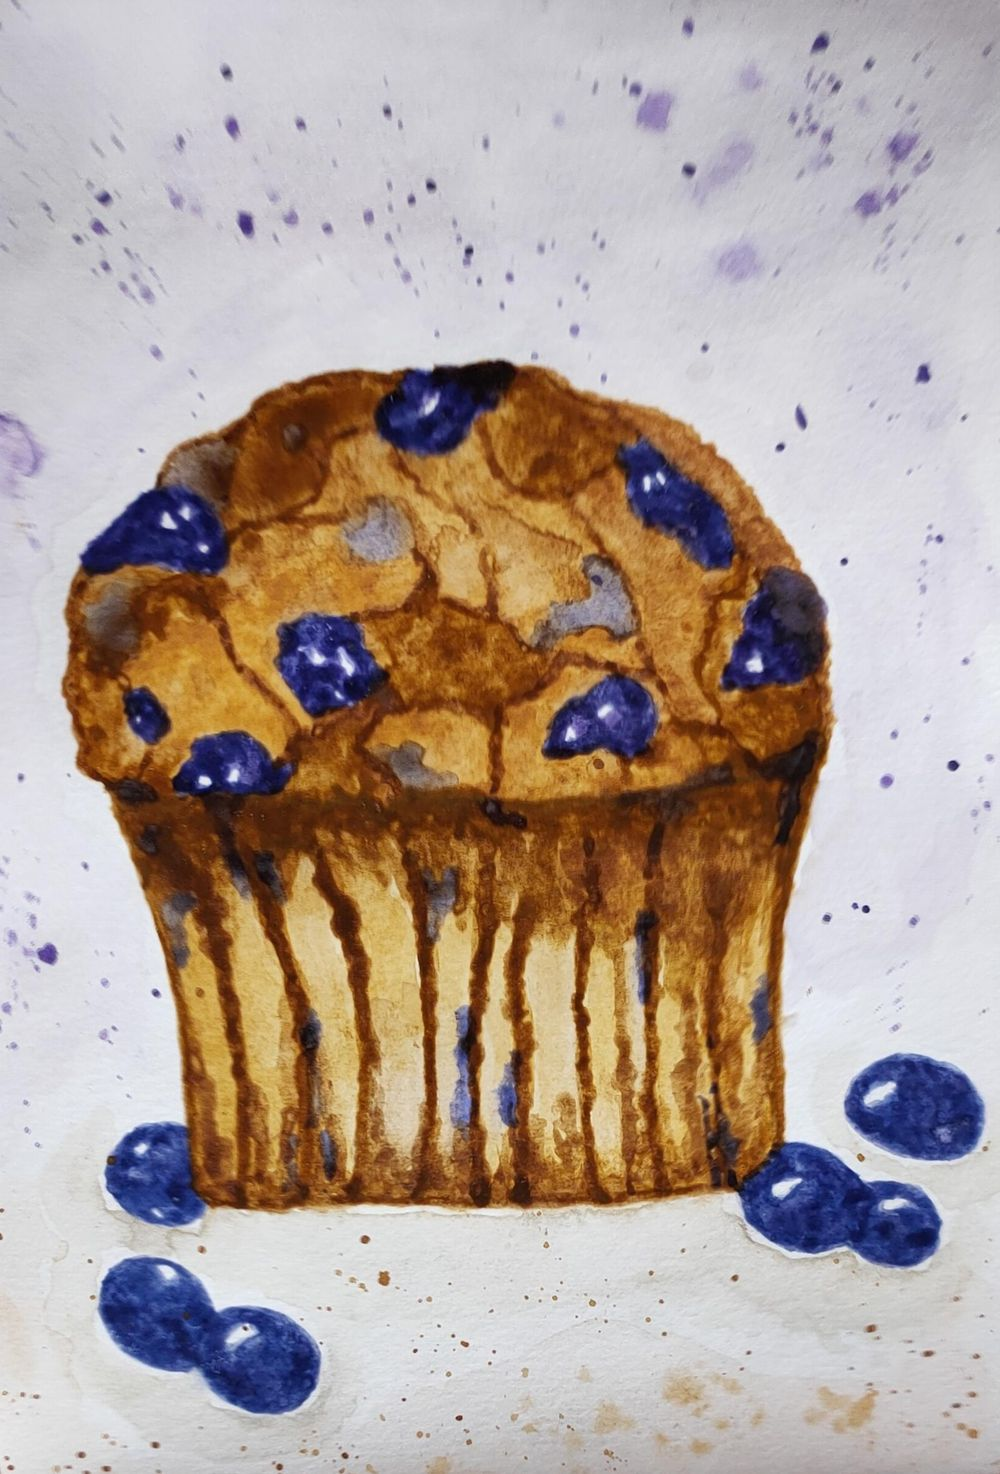 Watercolor Blueberry and Raspberry Muffin - image 2 - student project